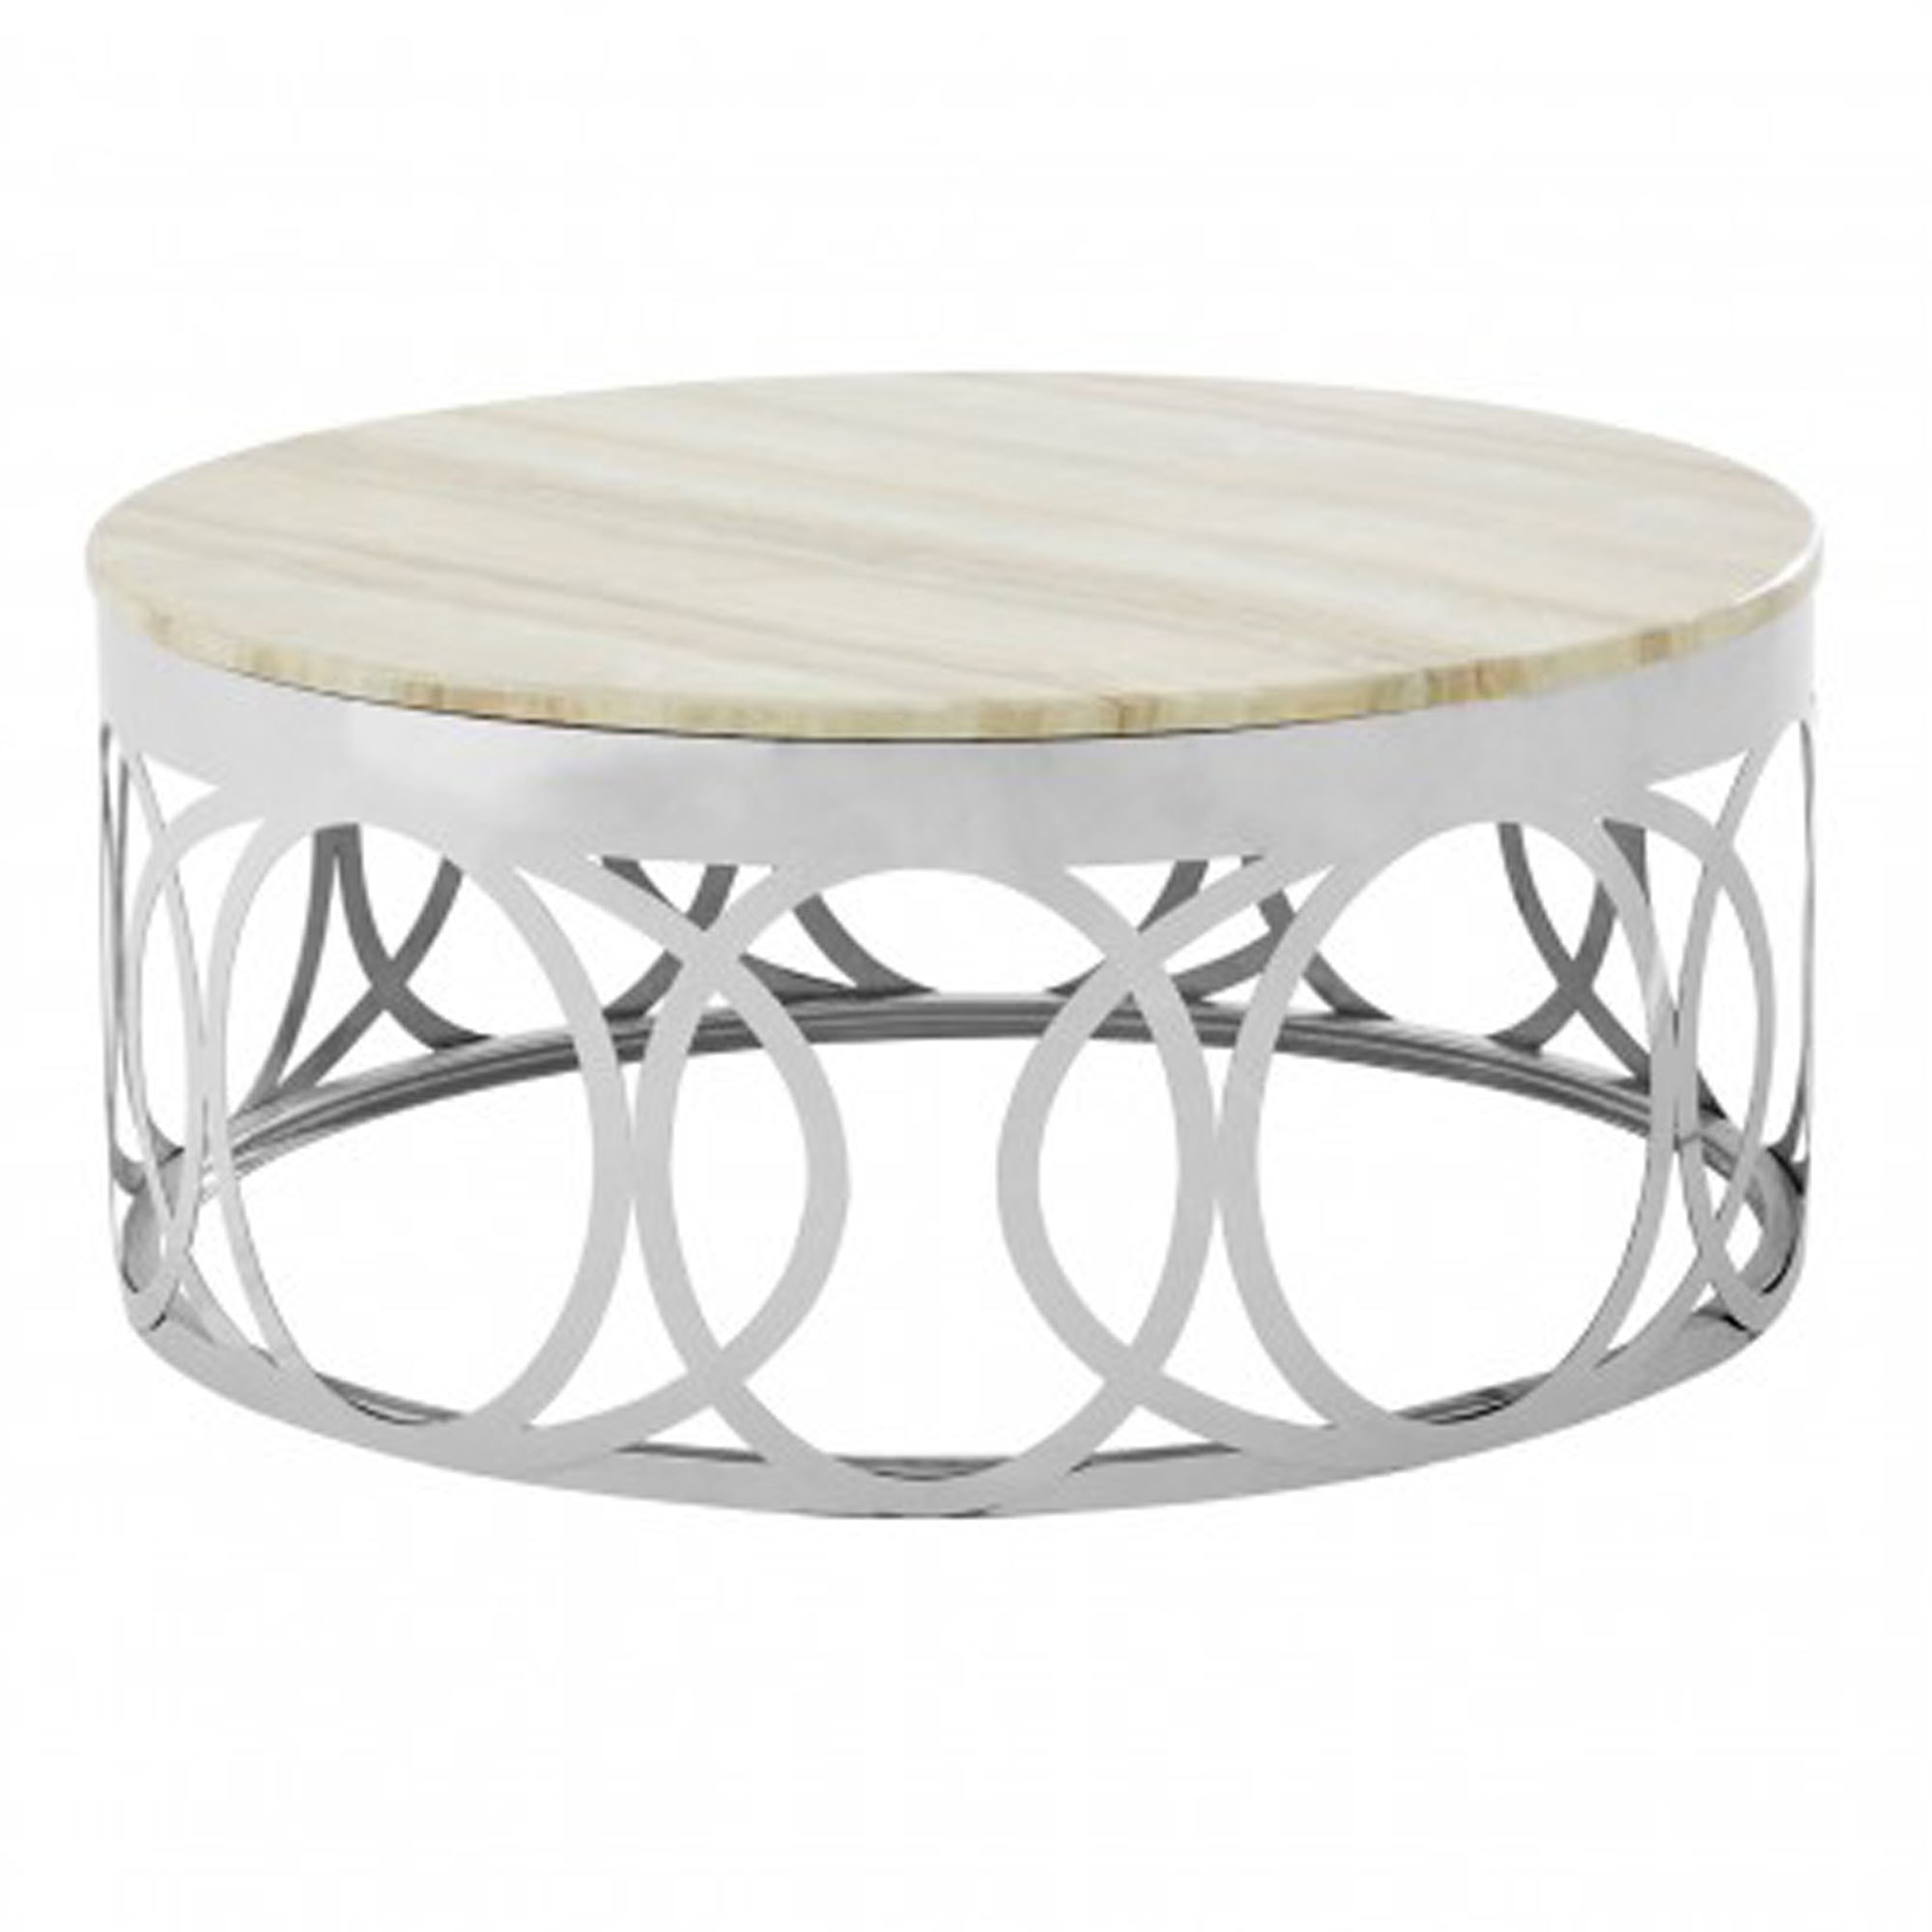 White Marble Coffee Table.Yasmin White Marble Coffee Table